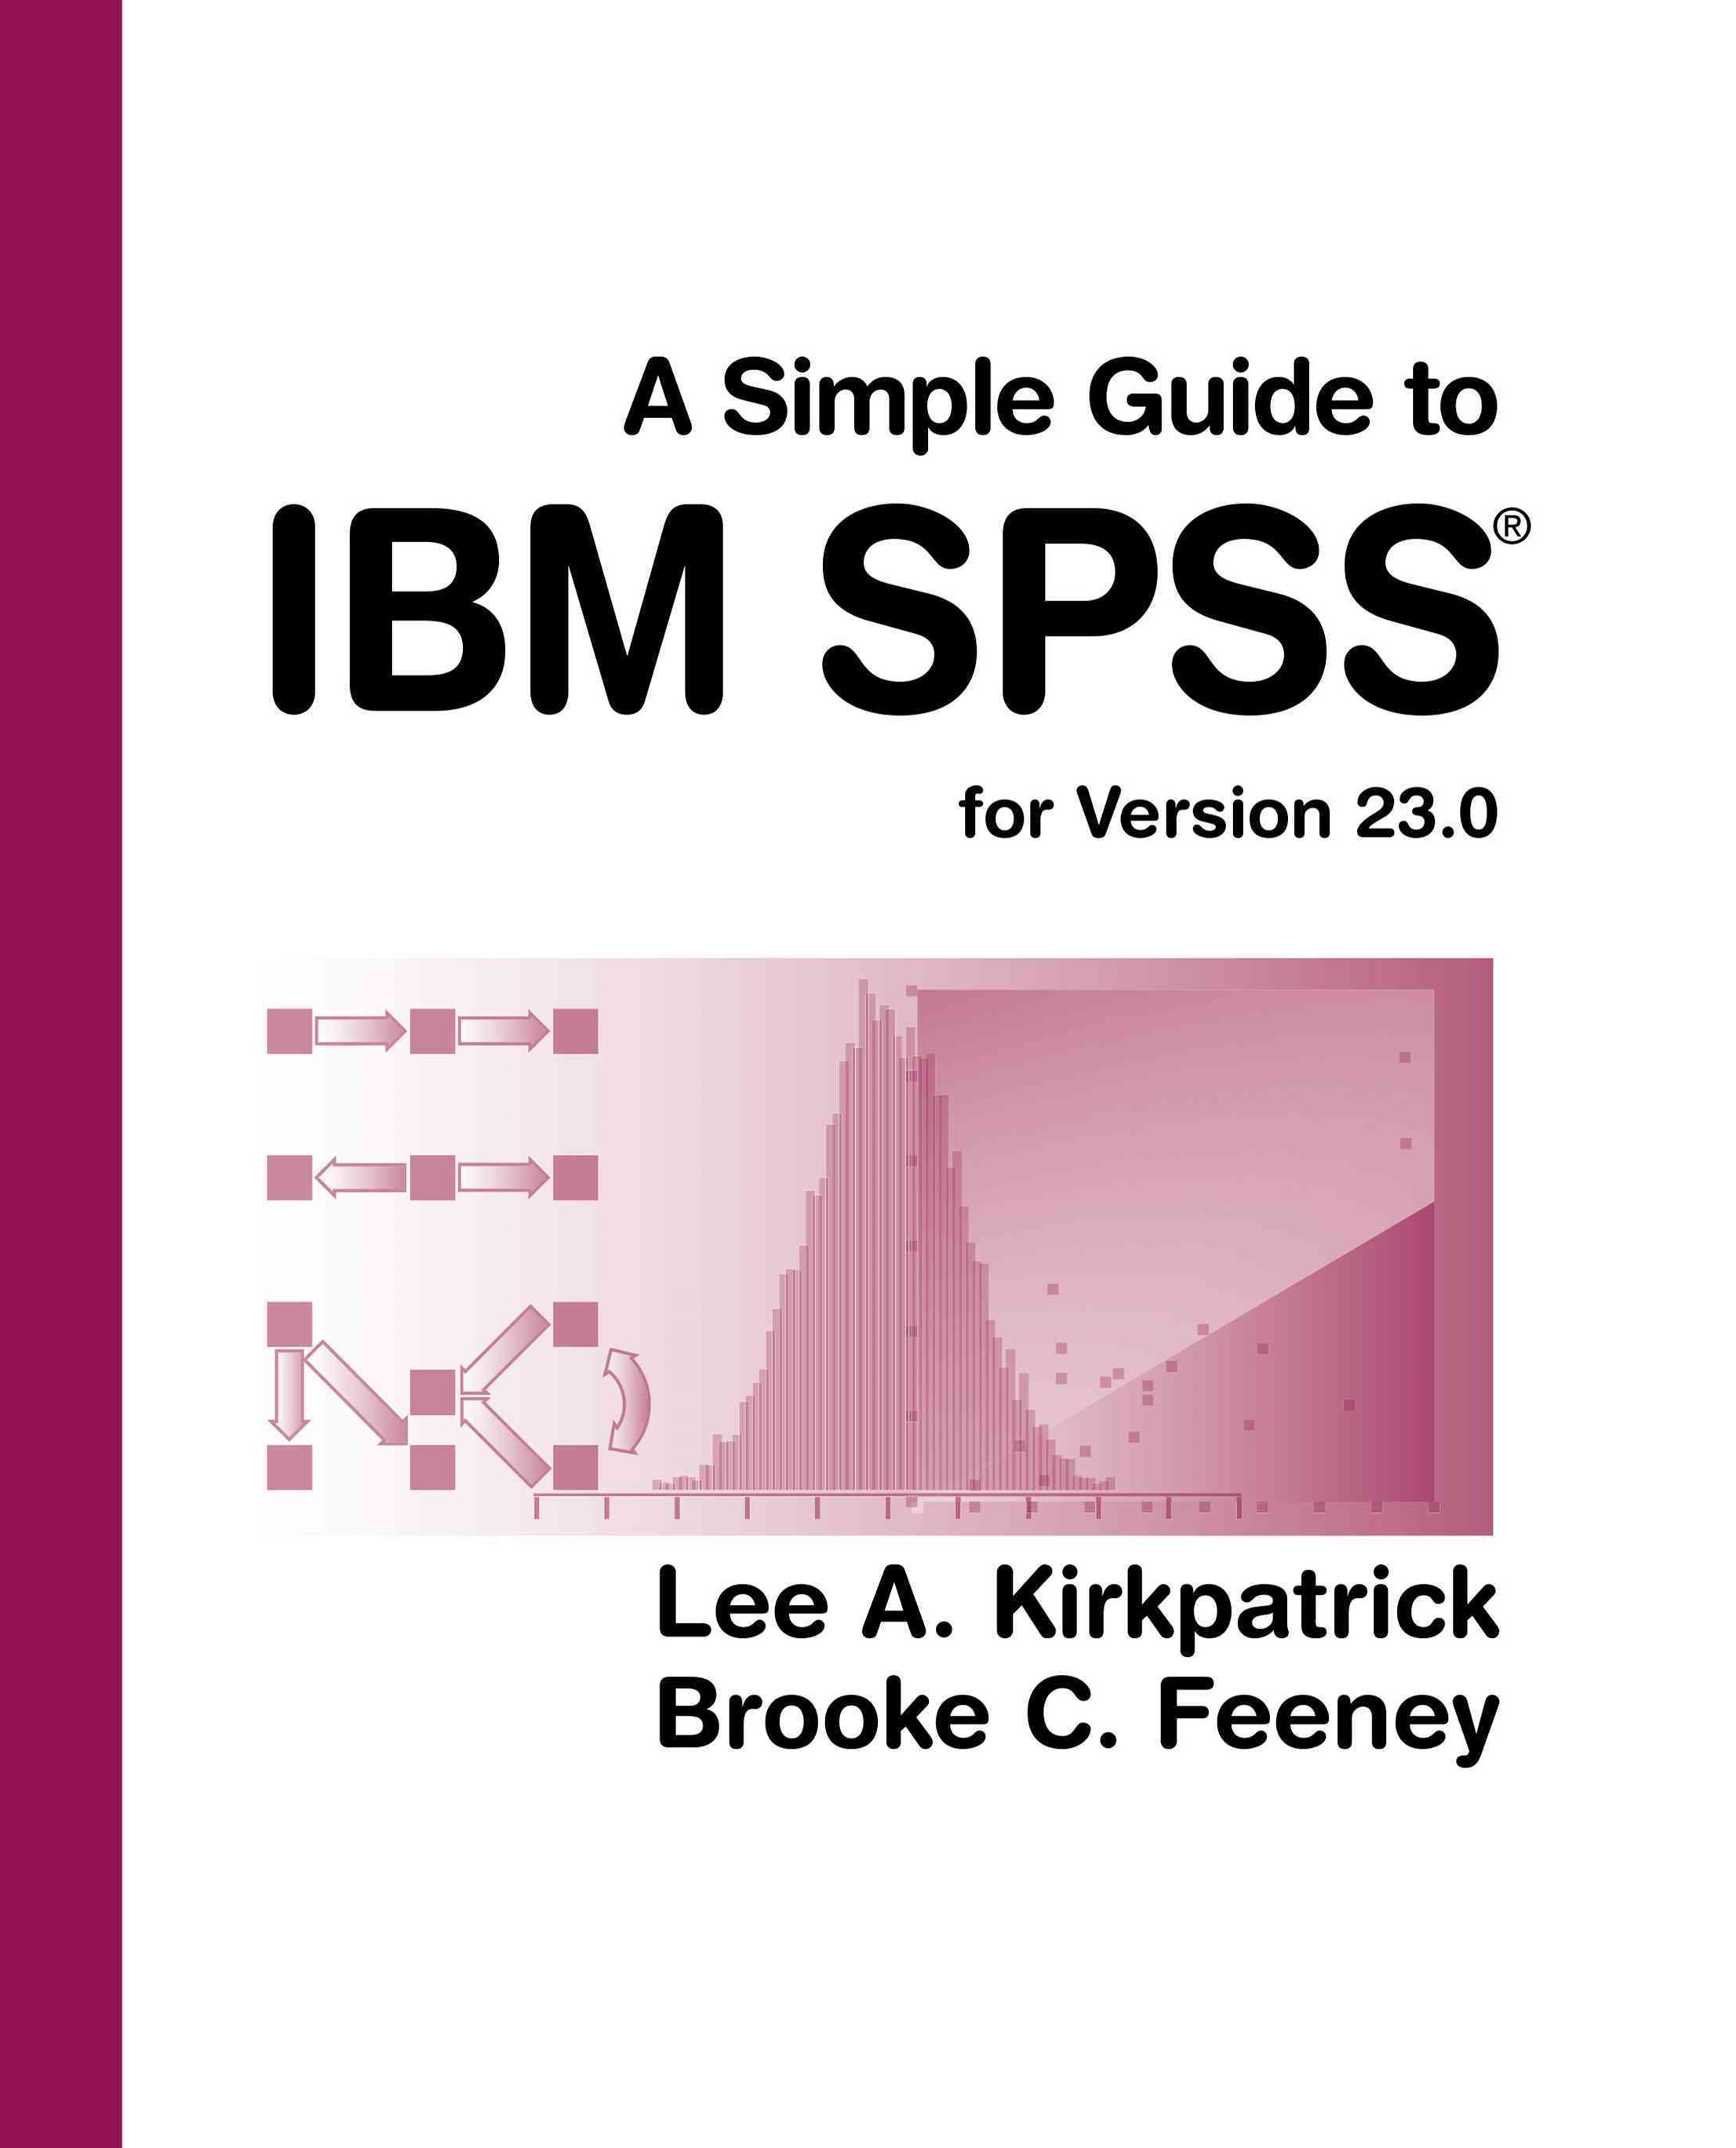 A Simple Guide to IBM SPSS Statistics - version 23.0